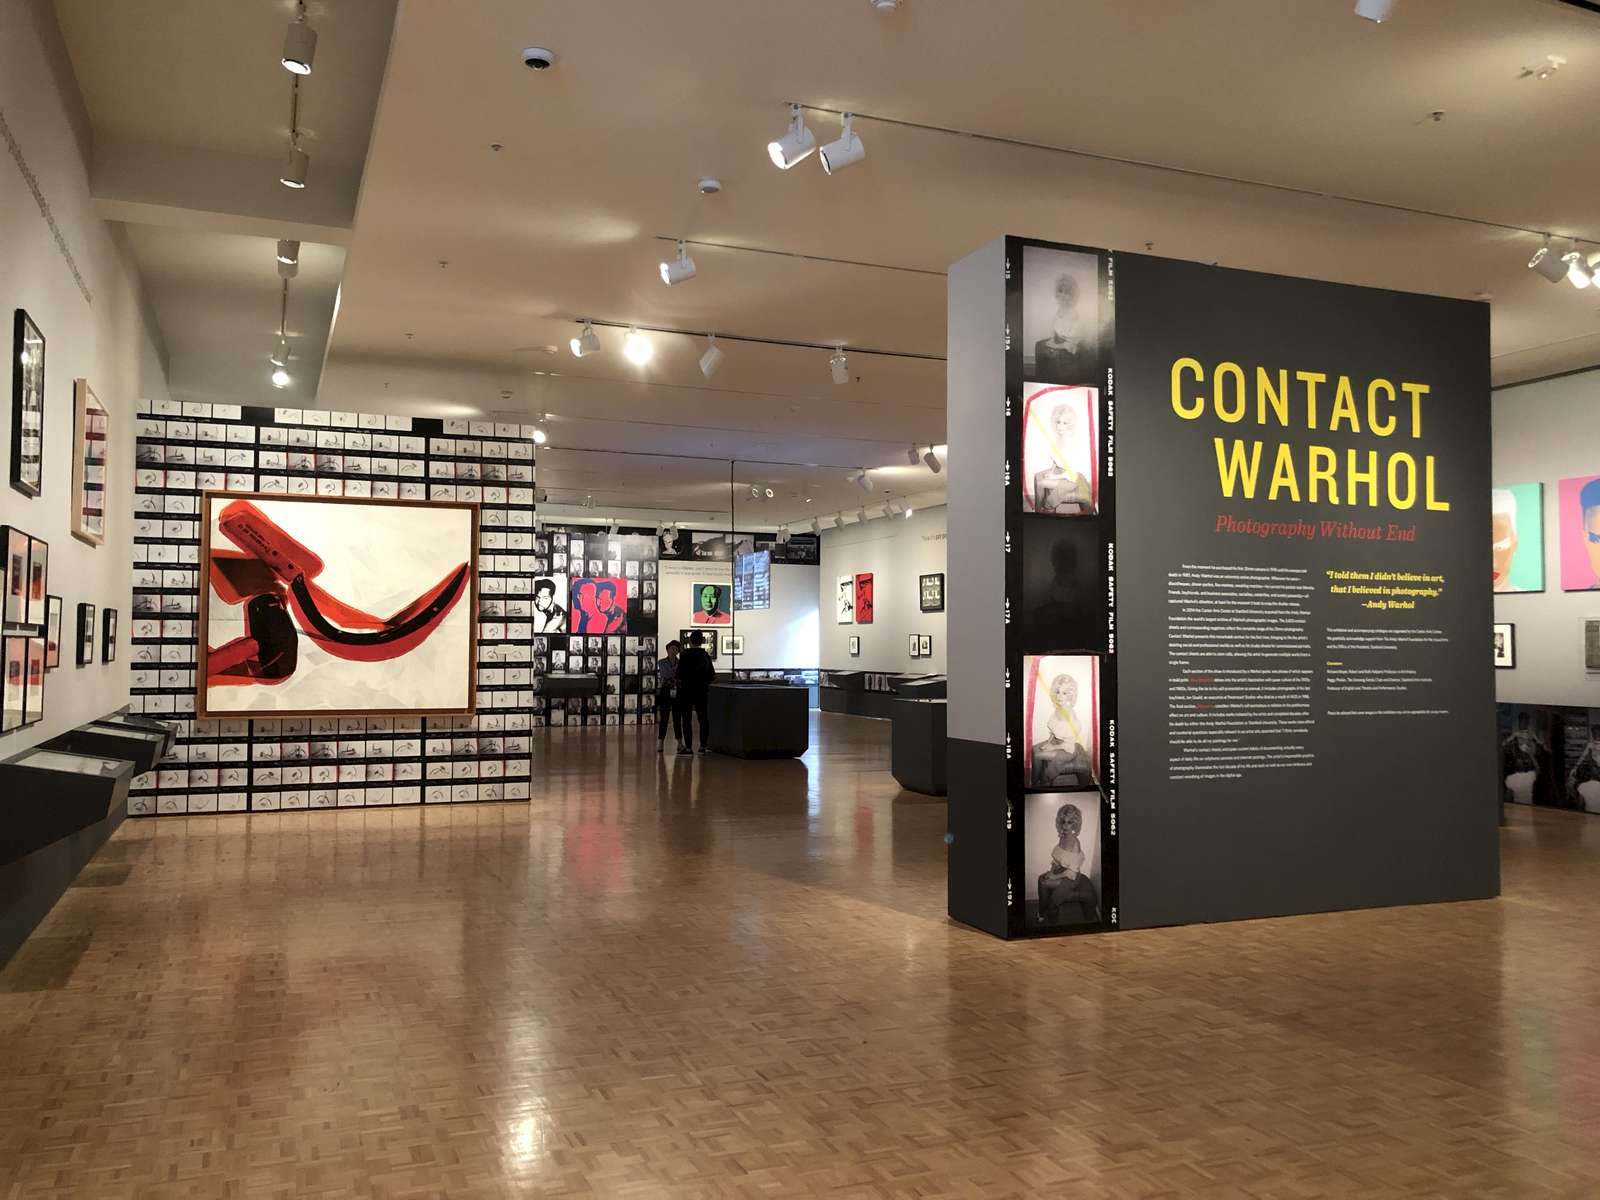 Contact Warhol: Photography Without End IKD oversaw all architectural and exhibition design elements including movable partitions, art display apparatus, layout of artwork, and graphic design for the project. IKD's holistic, integrative approach to gallery design enabled a seamless visitor experience that considered issues of visitor flow, accessibility, spatial composition, and visual organization as well as the integration of several projected videos and an interactive table. The exhibition drew from a trove of over 3,600 original contact sheets revealing previously unseen photographic exposures for the first time, depicting intimate images of the artist's daily life documenting everything from the mundane to his interaction with celebrities.